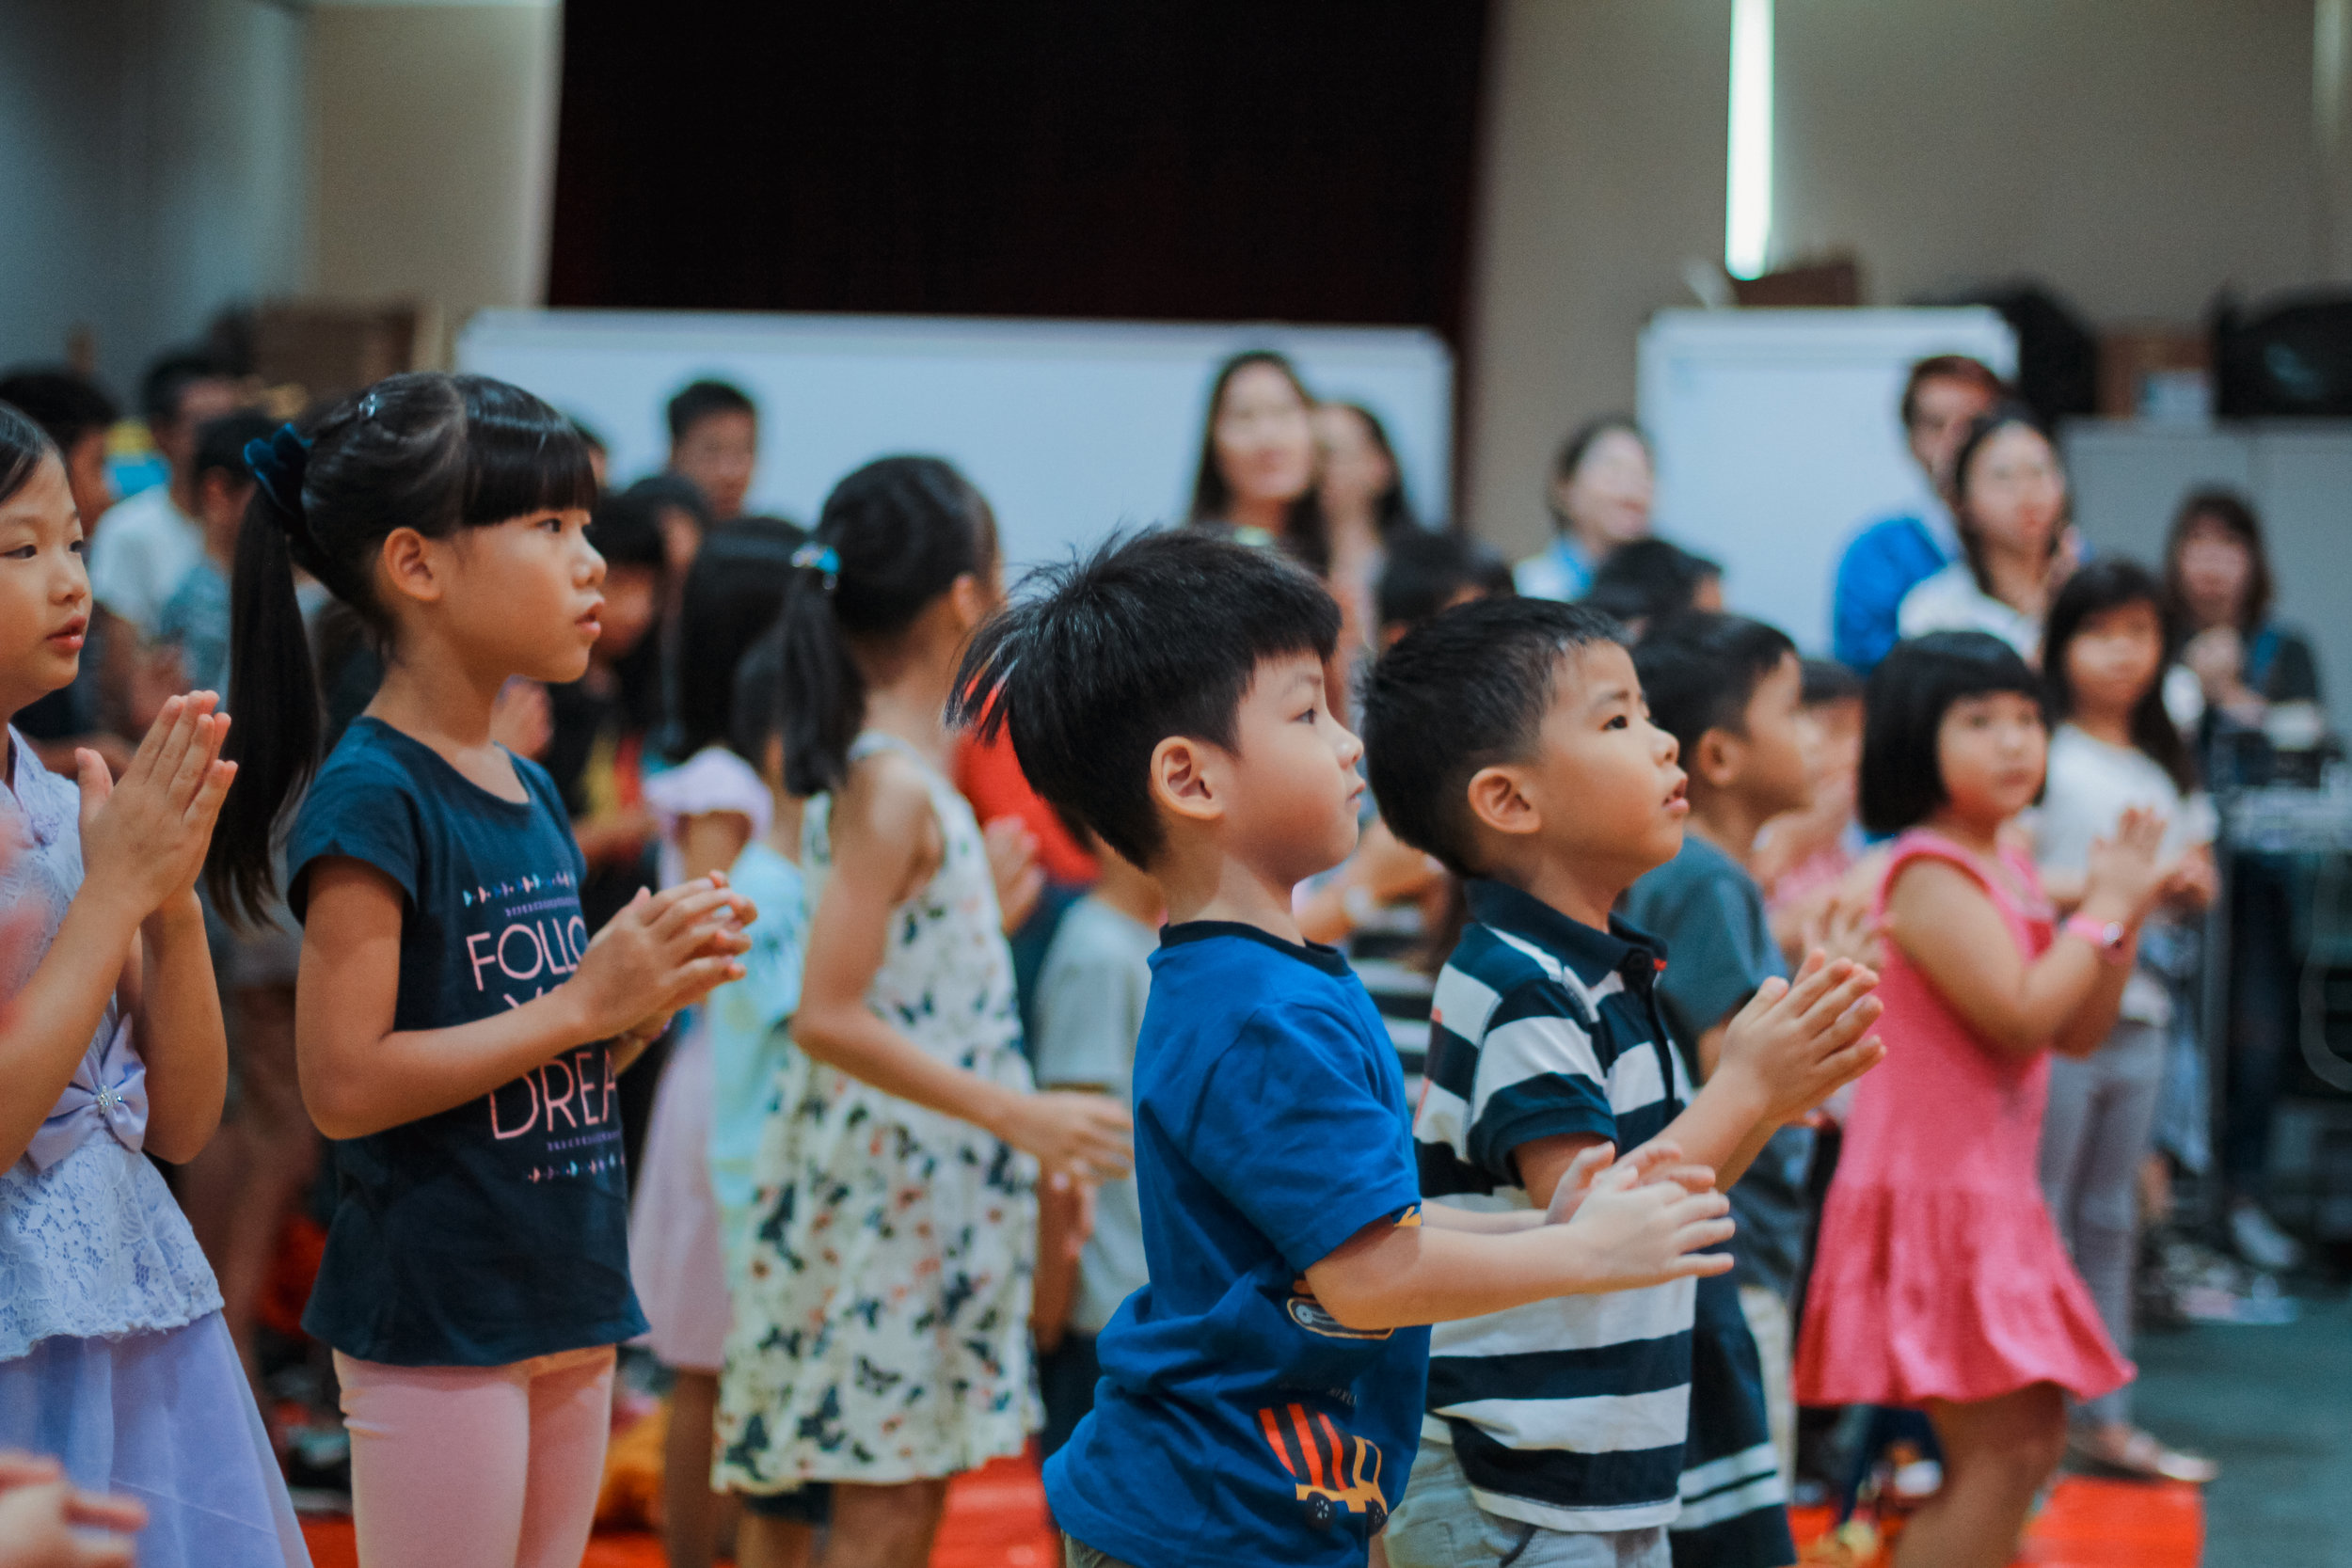 Children/Electric Kids' Company (EKC)   EKC seeks to reach and nurture children to know Christ and make Him known, with a focus on knowing God's word and reflecting Jesus.